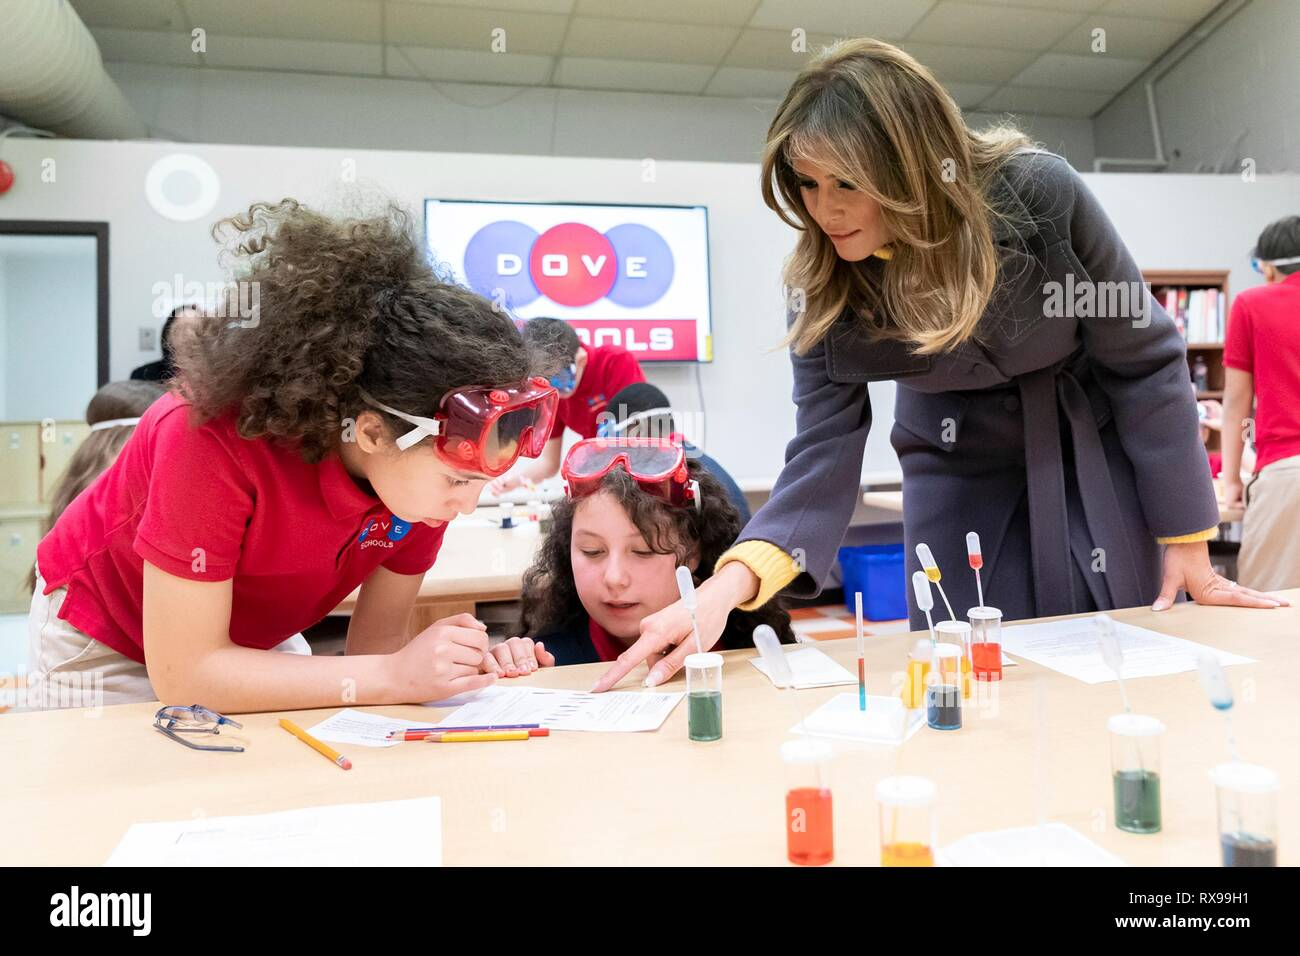 U.S First Lady Melania Trump joins students in science activities in Kelley Flemmings 6th grade class, during a visit to the Dove School of Discovery Elementary School March 4, 2019 in Tulsa, Oklahoma. Stock Photo